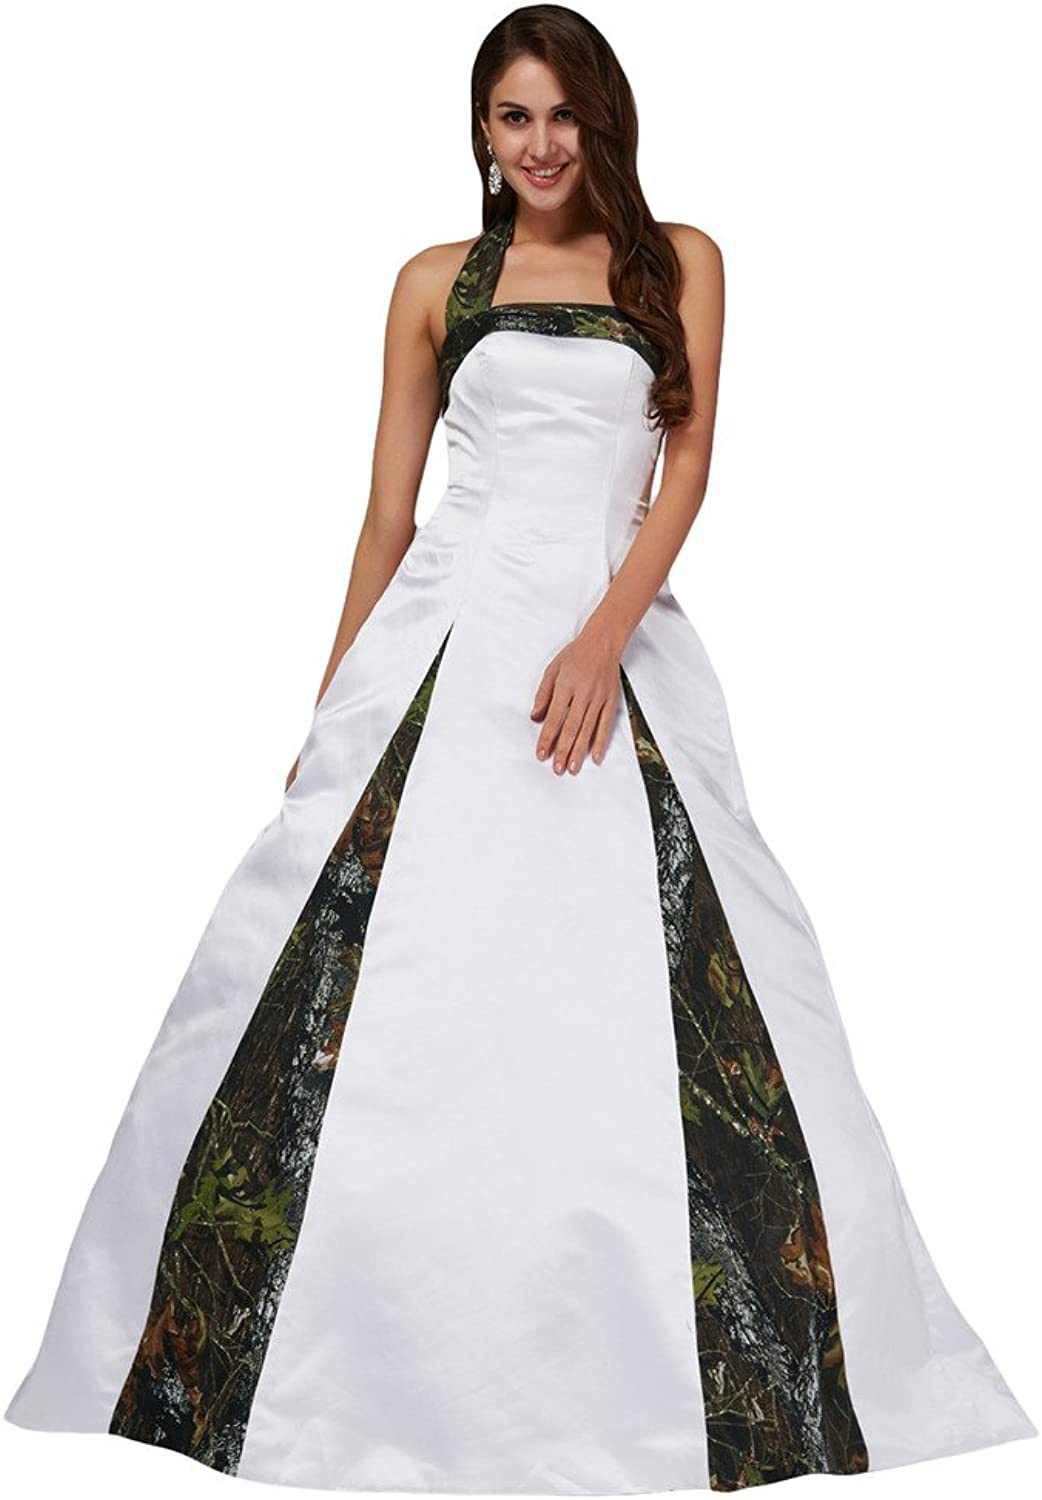 MILANO BRIDE Unique Ball Gown Halter Camo Wedding Party Dress Prom Gown for Women